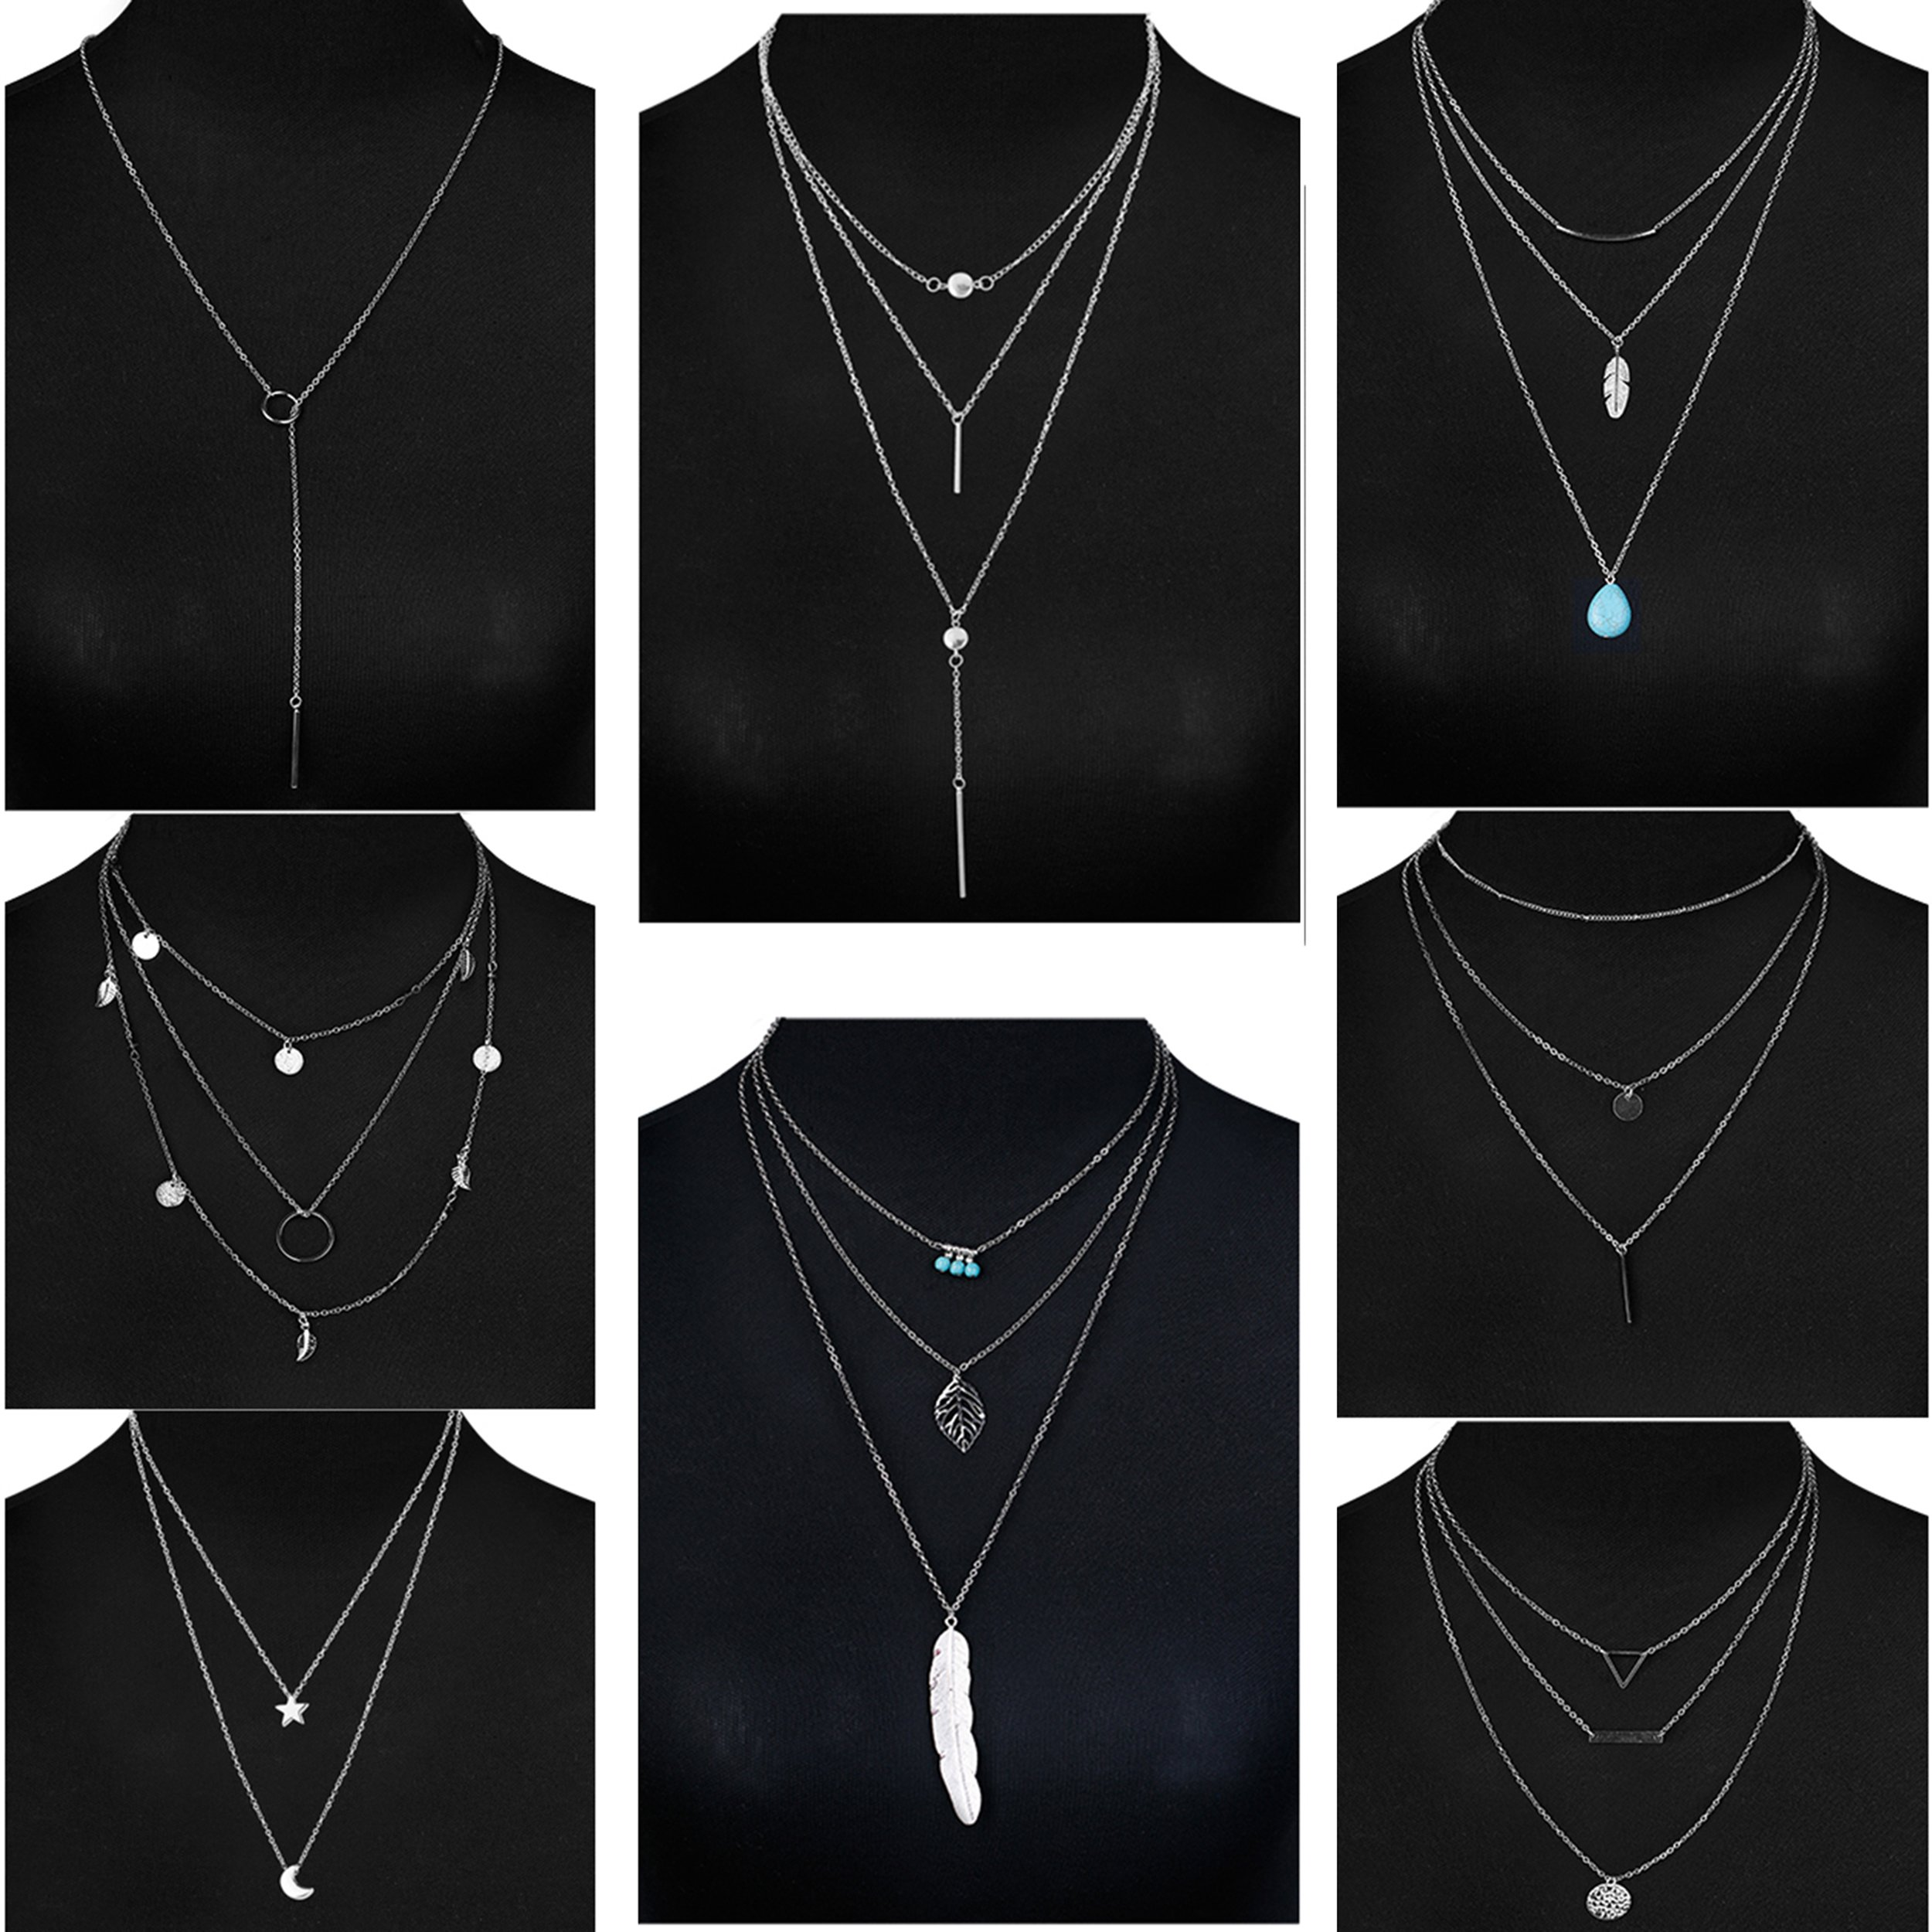 Jstyle 8 Pcs Simple Layered Choker Necklace For Women Girls Sexy Long Chain Y Necklace Bar Feather Pendent Necklace (Style B:8Pcs(Silver))